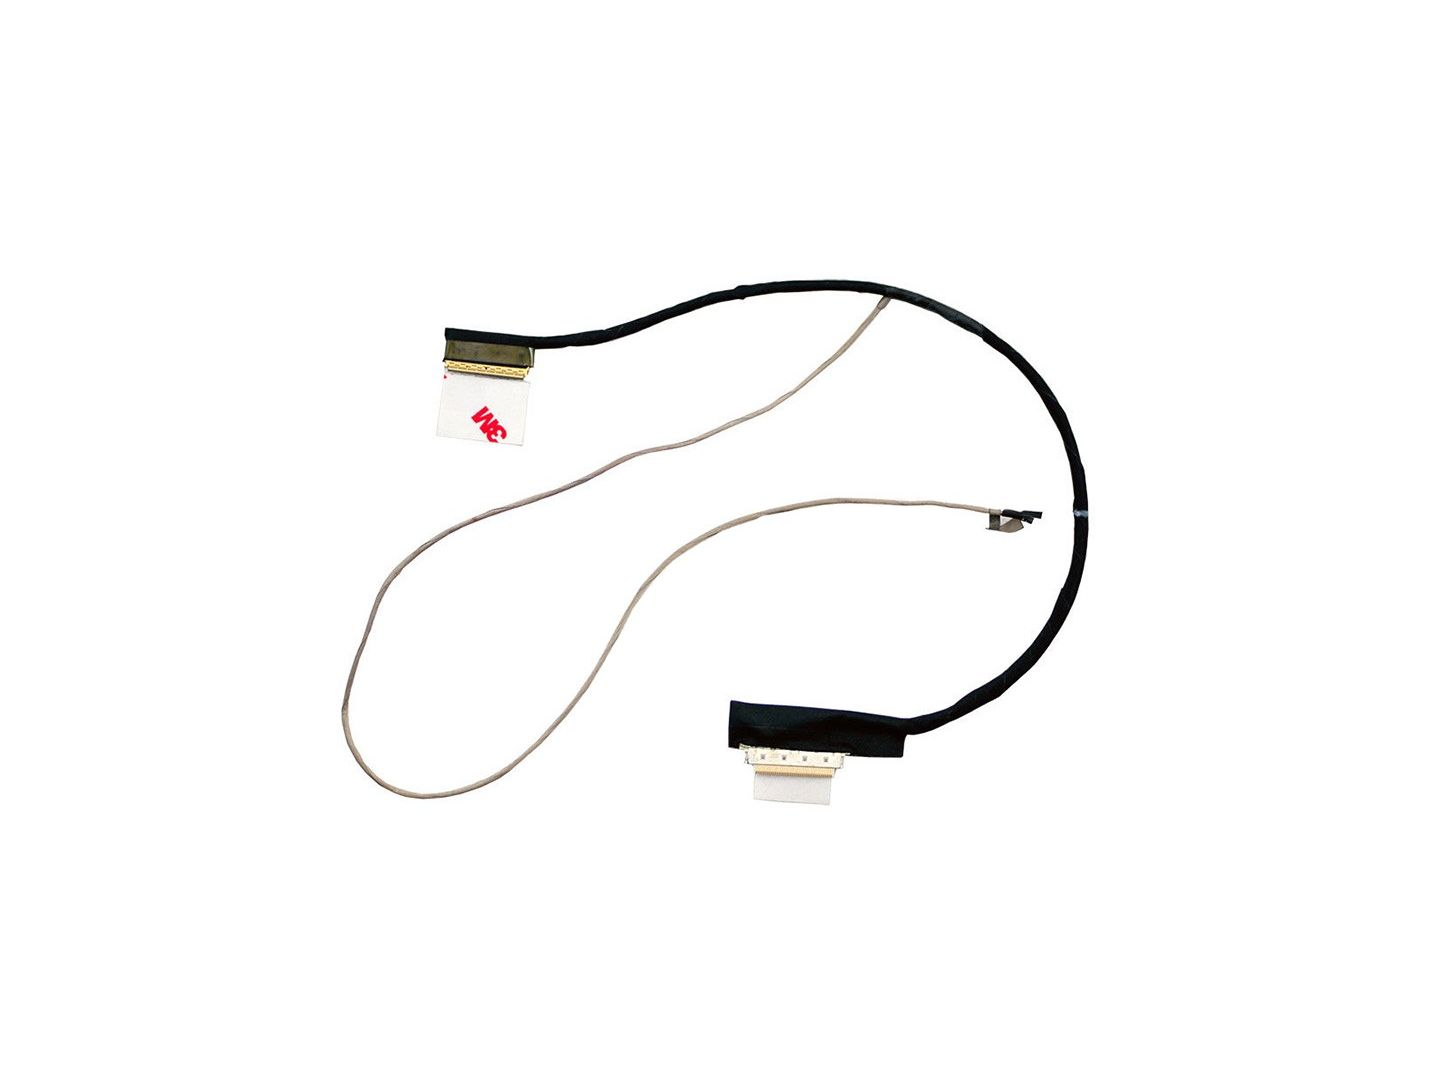 LCD LVDS SCREEN CABLE FOR HP 15-r230nr 15-r082nr 15-r240tu 15-r263dx 15-r290la